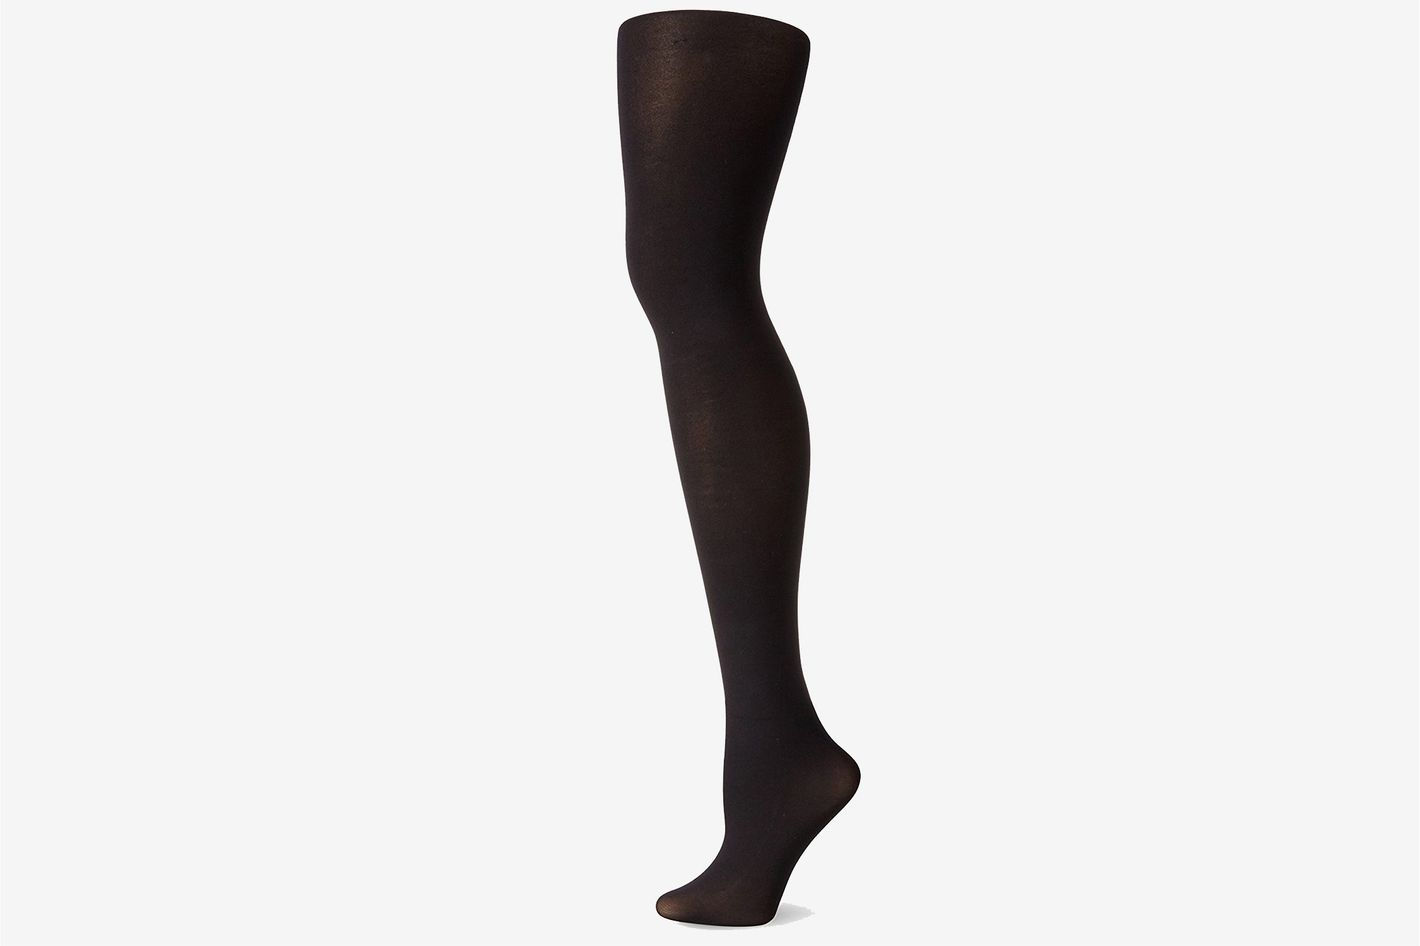 5870453ac13 Ingrid   Isabel Women s Maternity Opaque Tights at Amazon